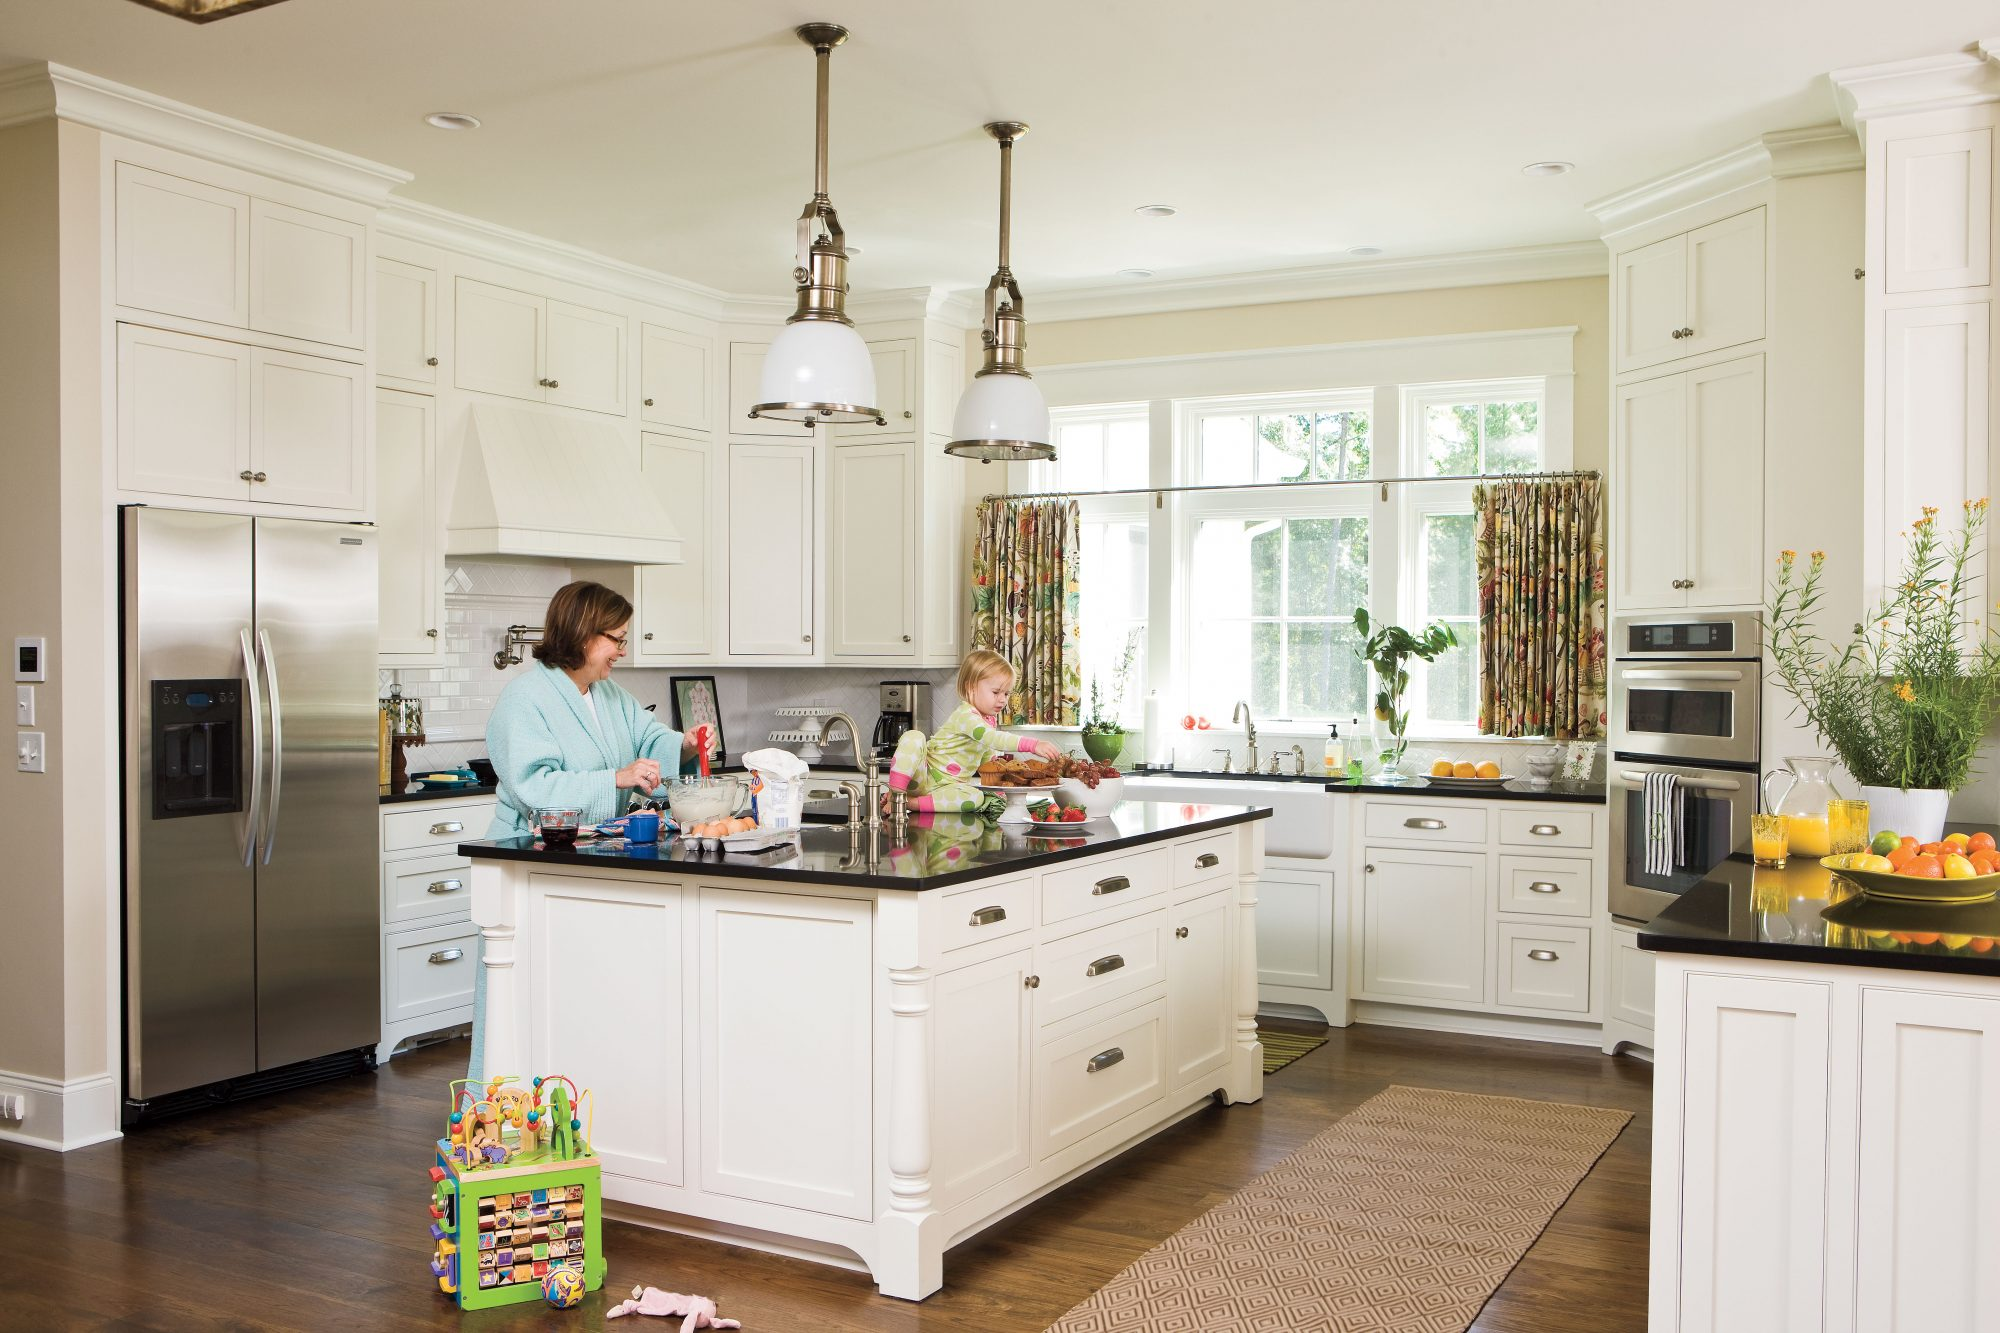 Home Ideas for Southern Charm - Southern Living